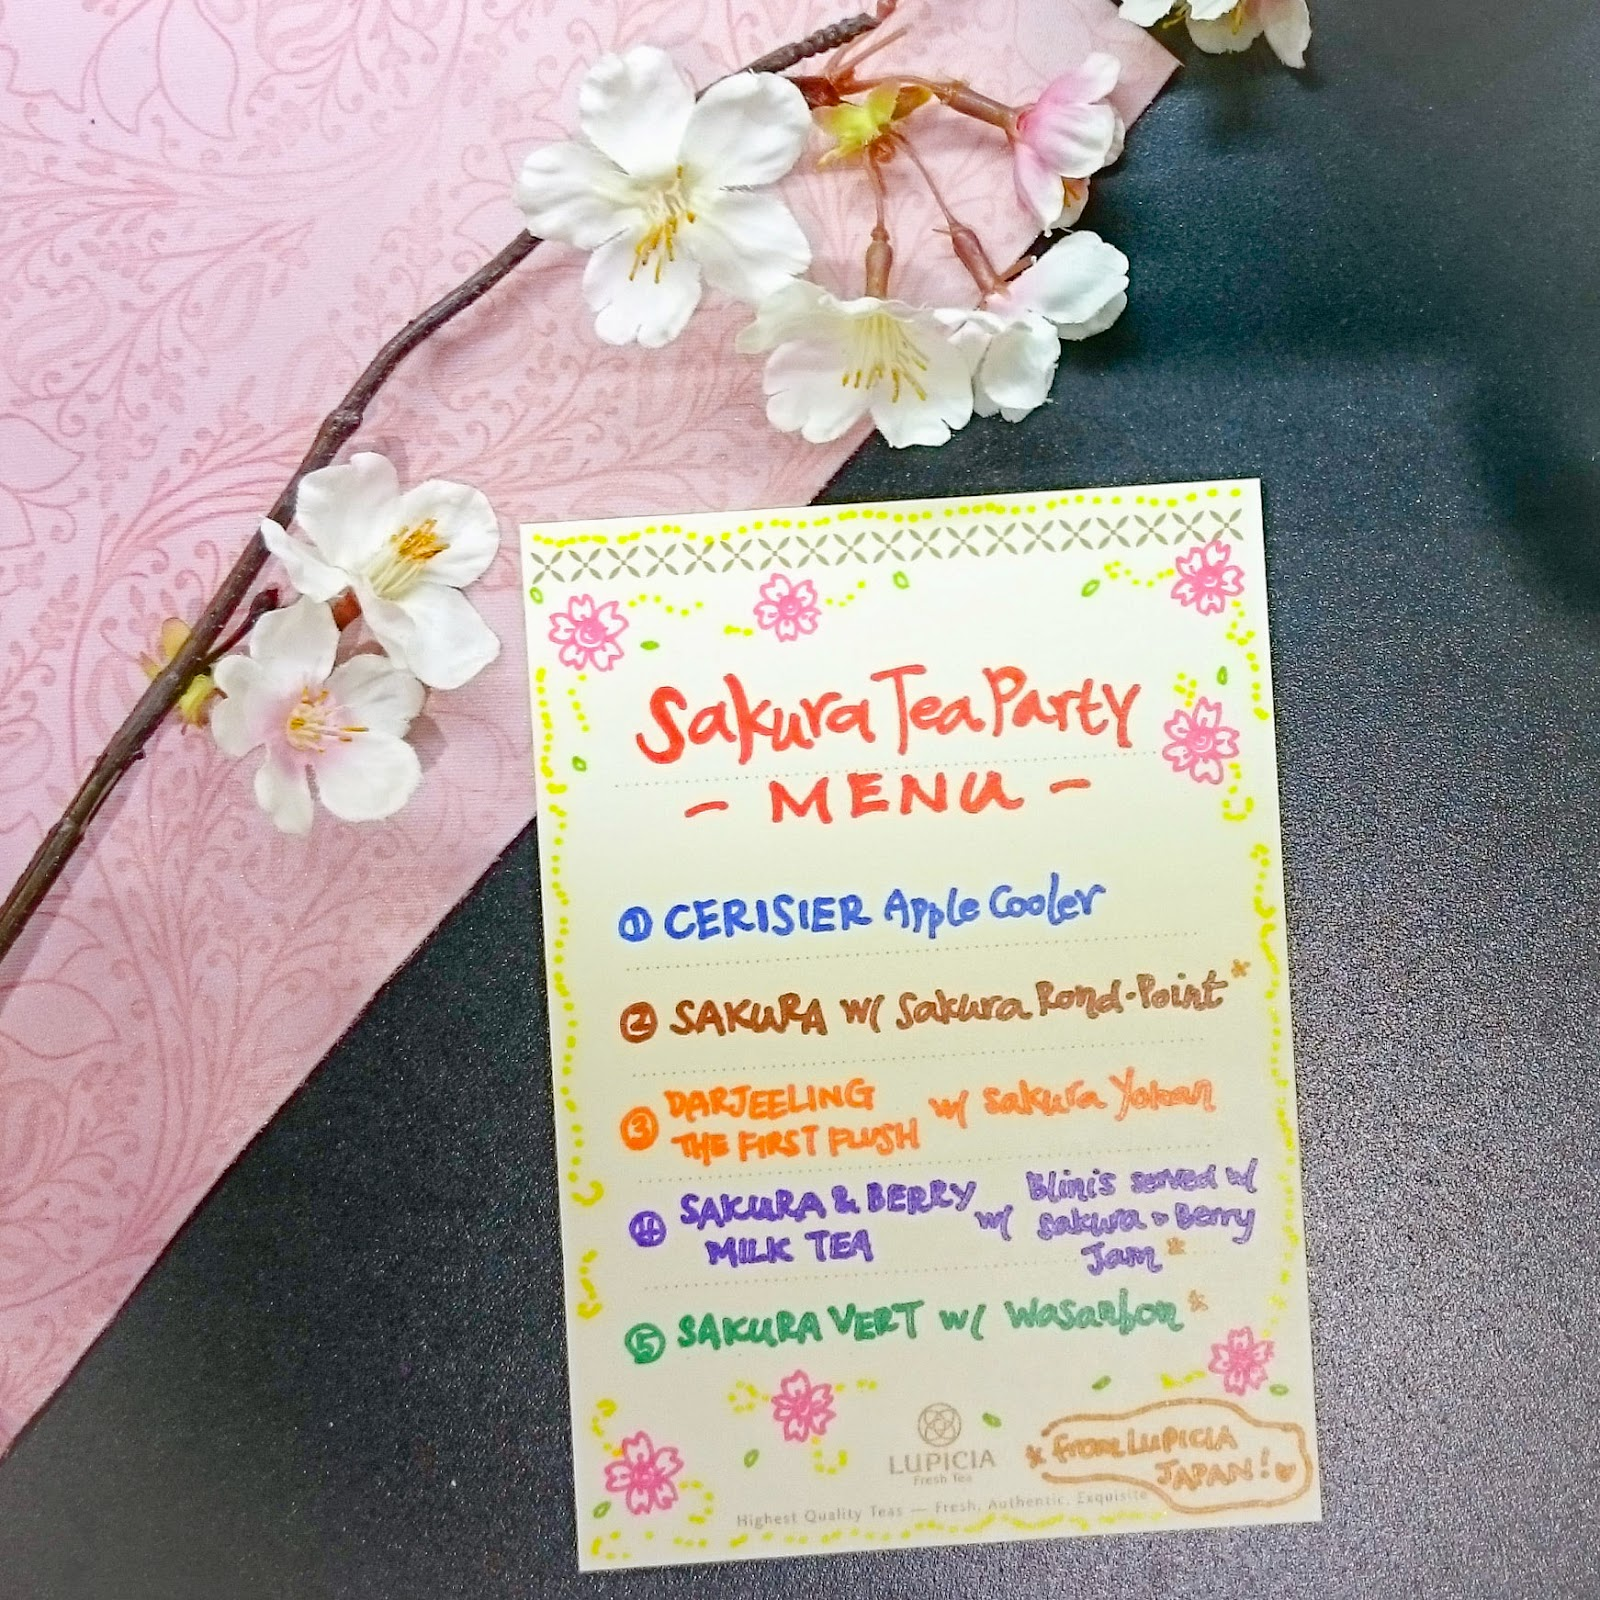 Sakura Tea party menu